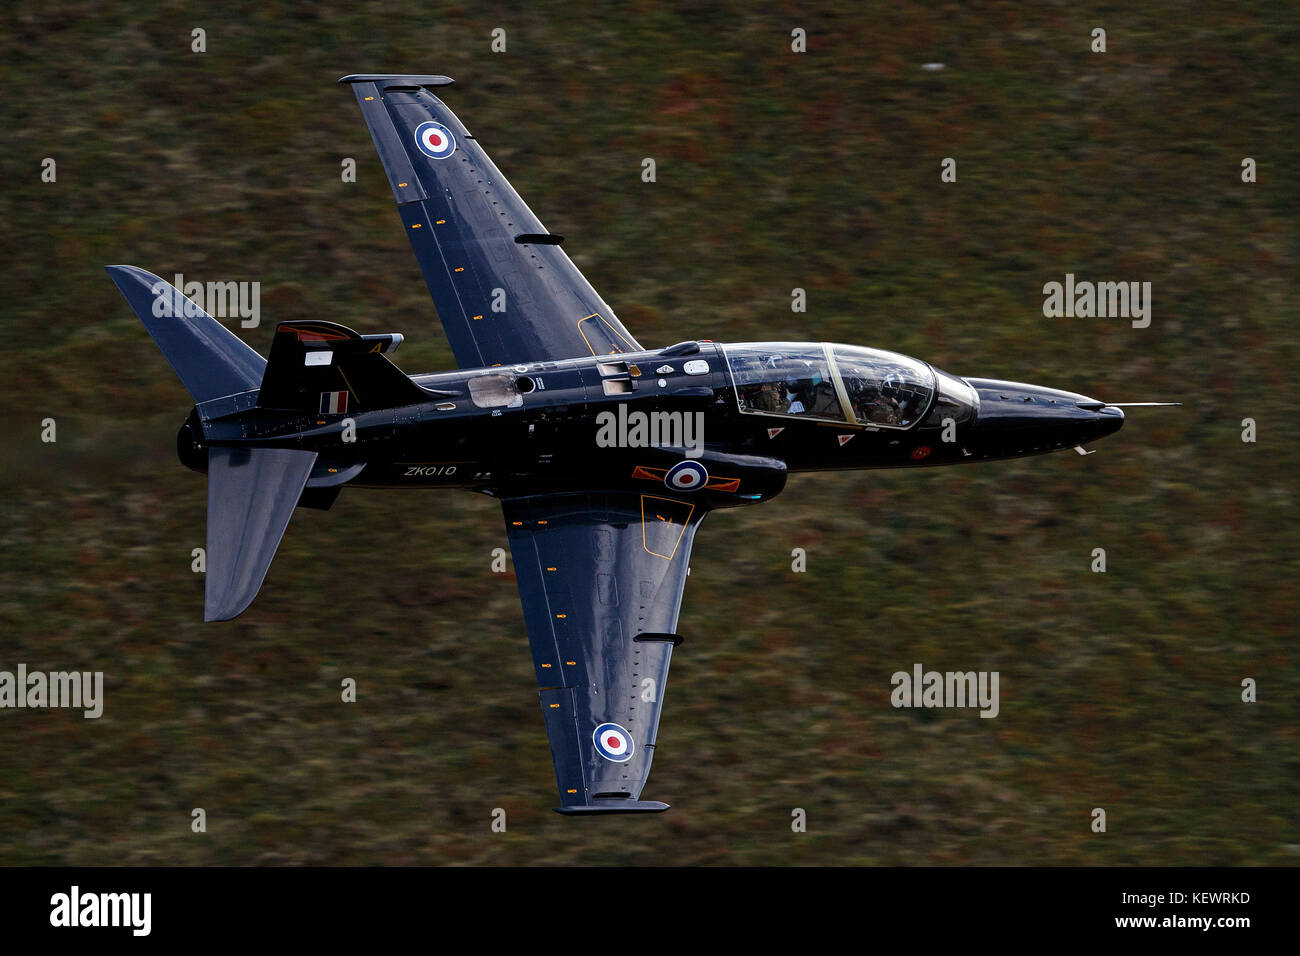 Royal Air Force BAE Systems T2 Hawk (ZK010) flies low level through the Mach Loop, Machynlleth, Wales, United Kingdom - Stock Image